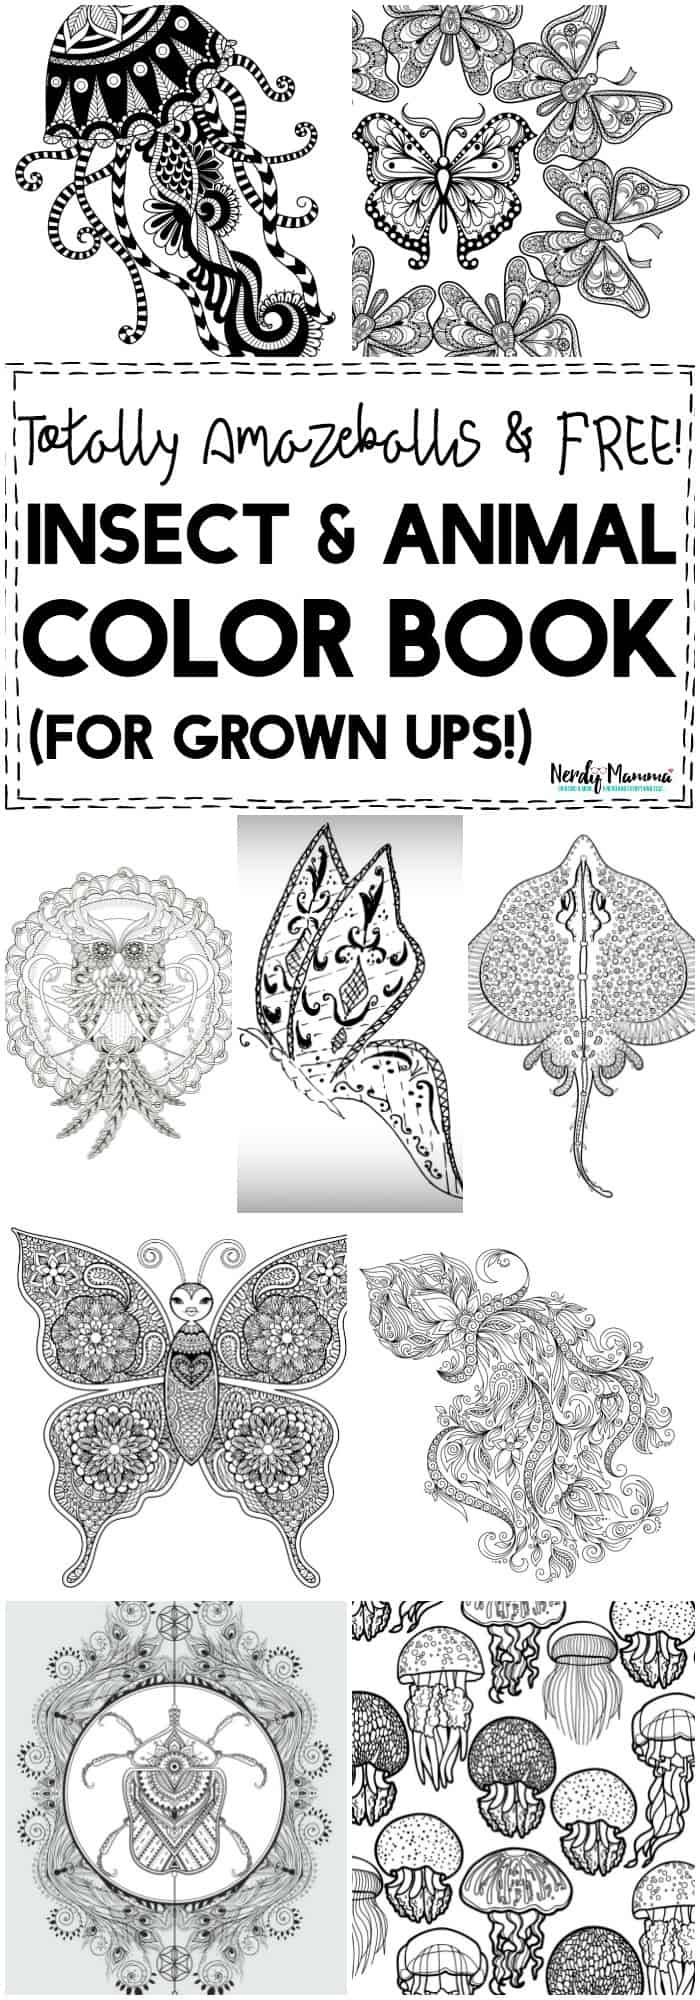 OMG, this TOTALLY FREE adult coloring book is AWESOME. You've got to check this out!